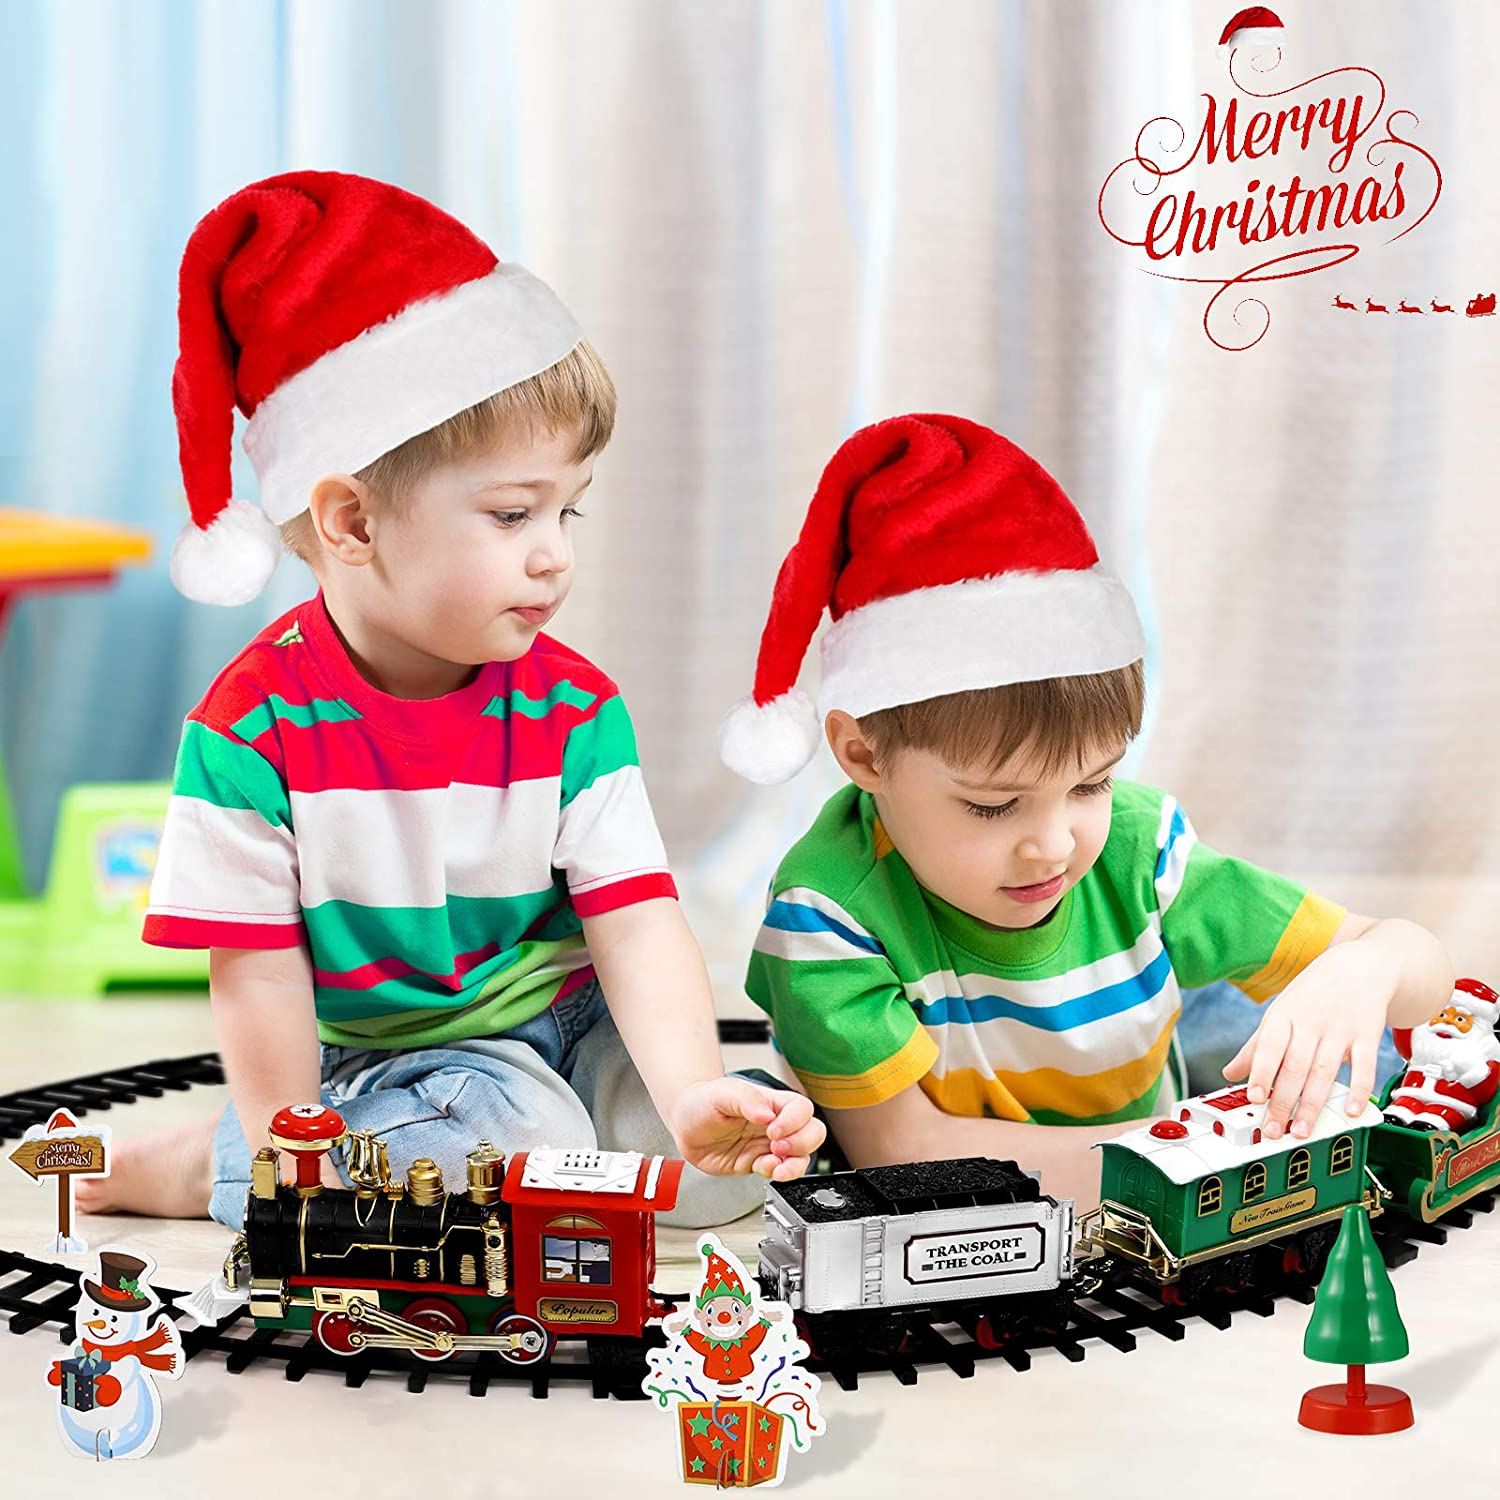 Toyvian Christmas Railway Train Set with 47.2 Railway Track /& 4 Cars Lights and Sounds Railway,Battery Operated Locomotive Engine Play Set Electronic Toys Gift for Kids